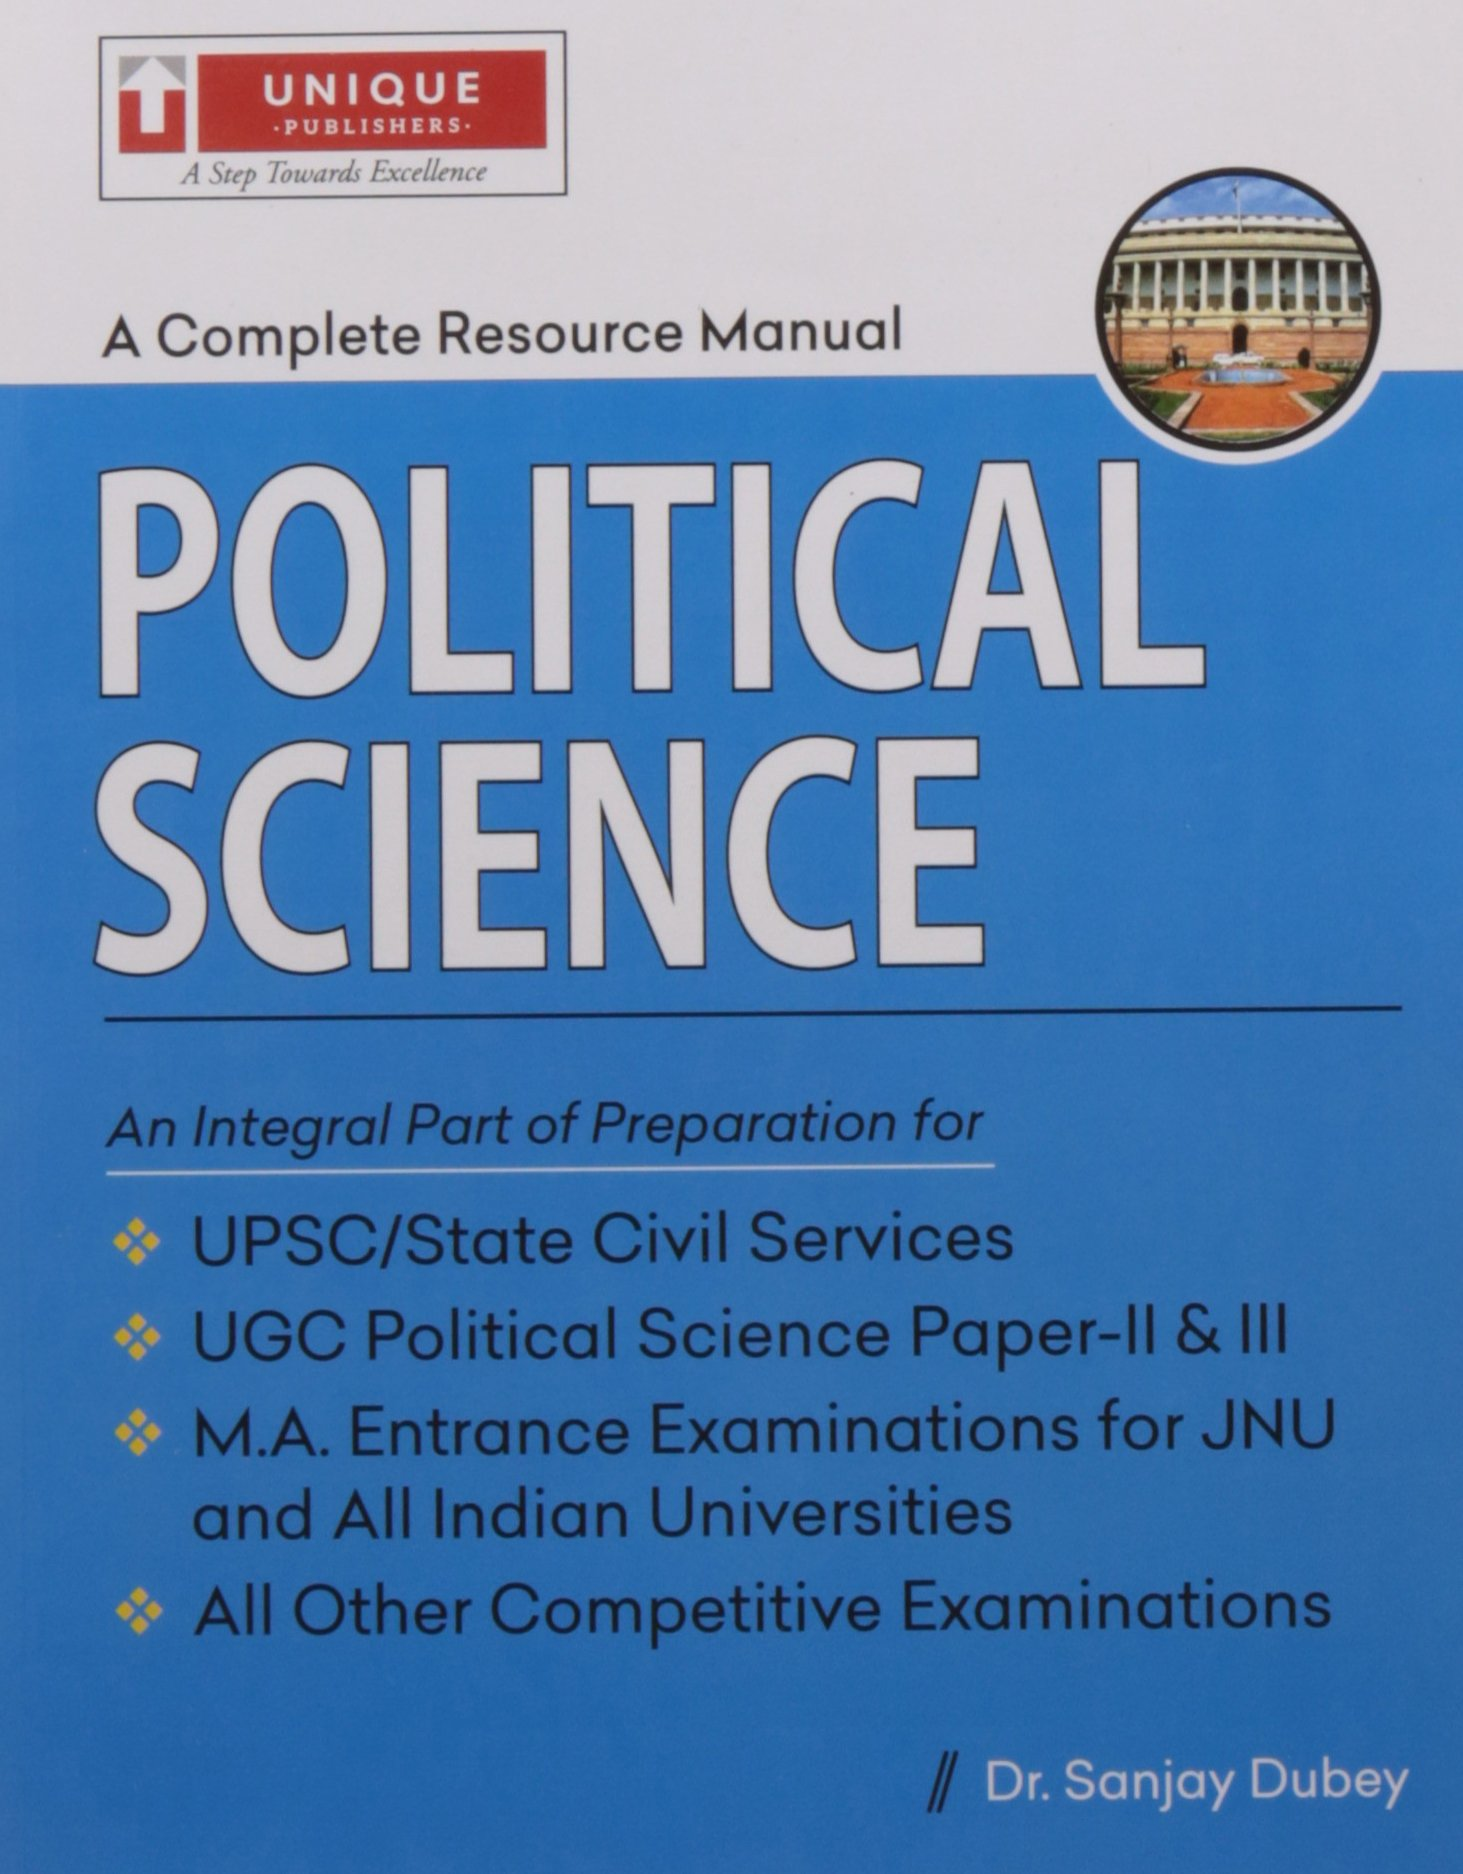 COMPLETE RESOURCE MANUAL POLITICAL SCIENCE (CODE-8.08.2) PDF